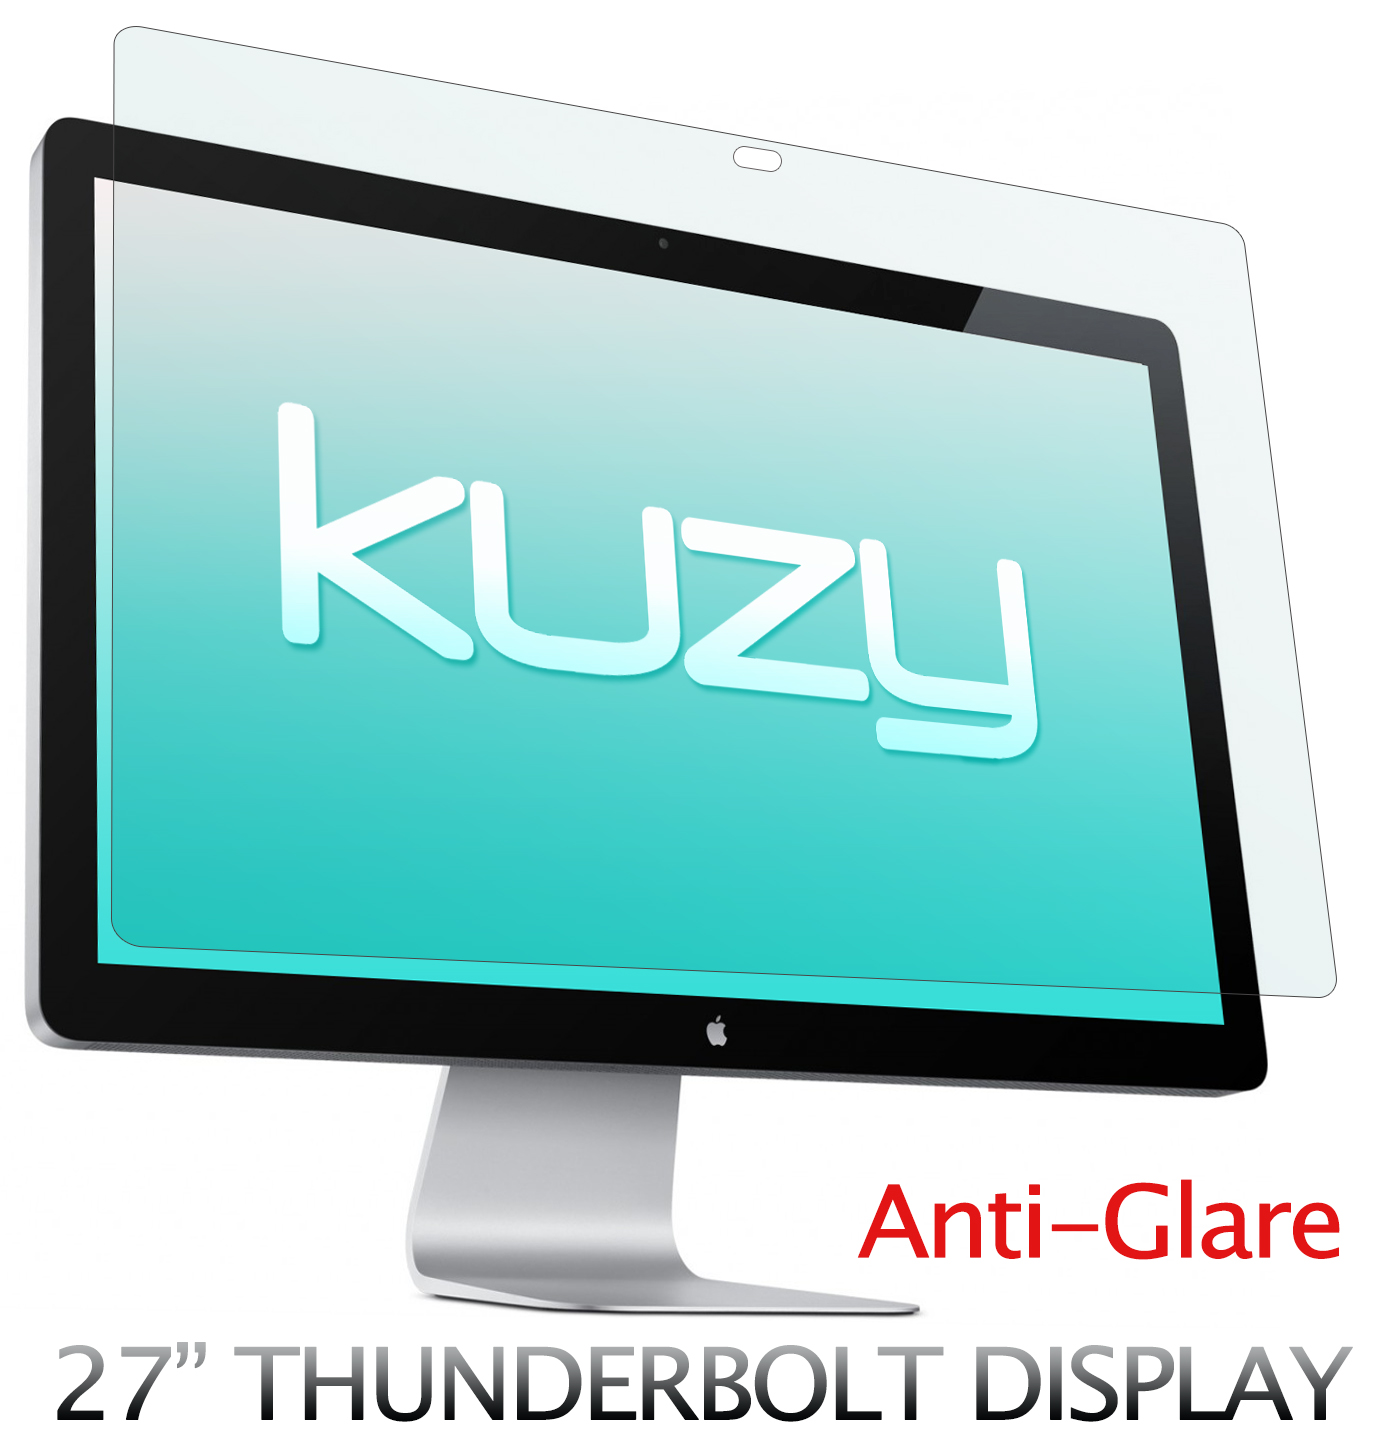 "Kuzy - Anti-Glare Matte Screen Protector Filter for 27 inch Apple Thunderbolt and/or Cinema Display 27"" Model: A1316 and A1407 - ANTI-GLARE"